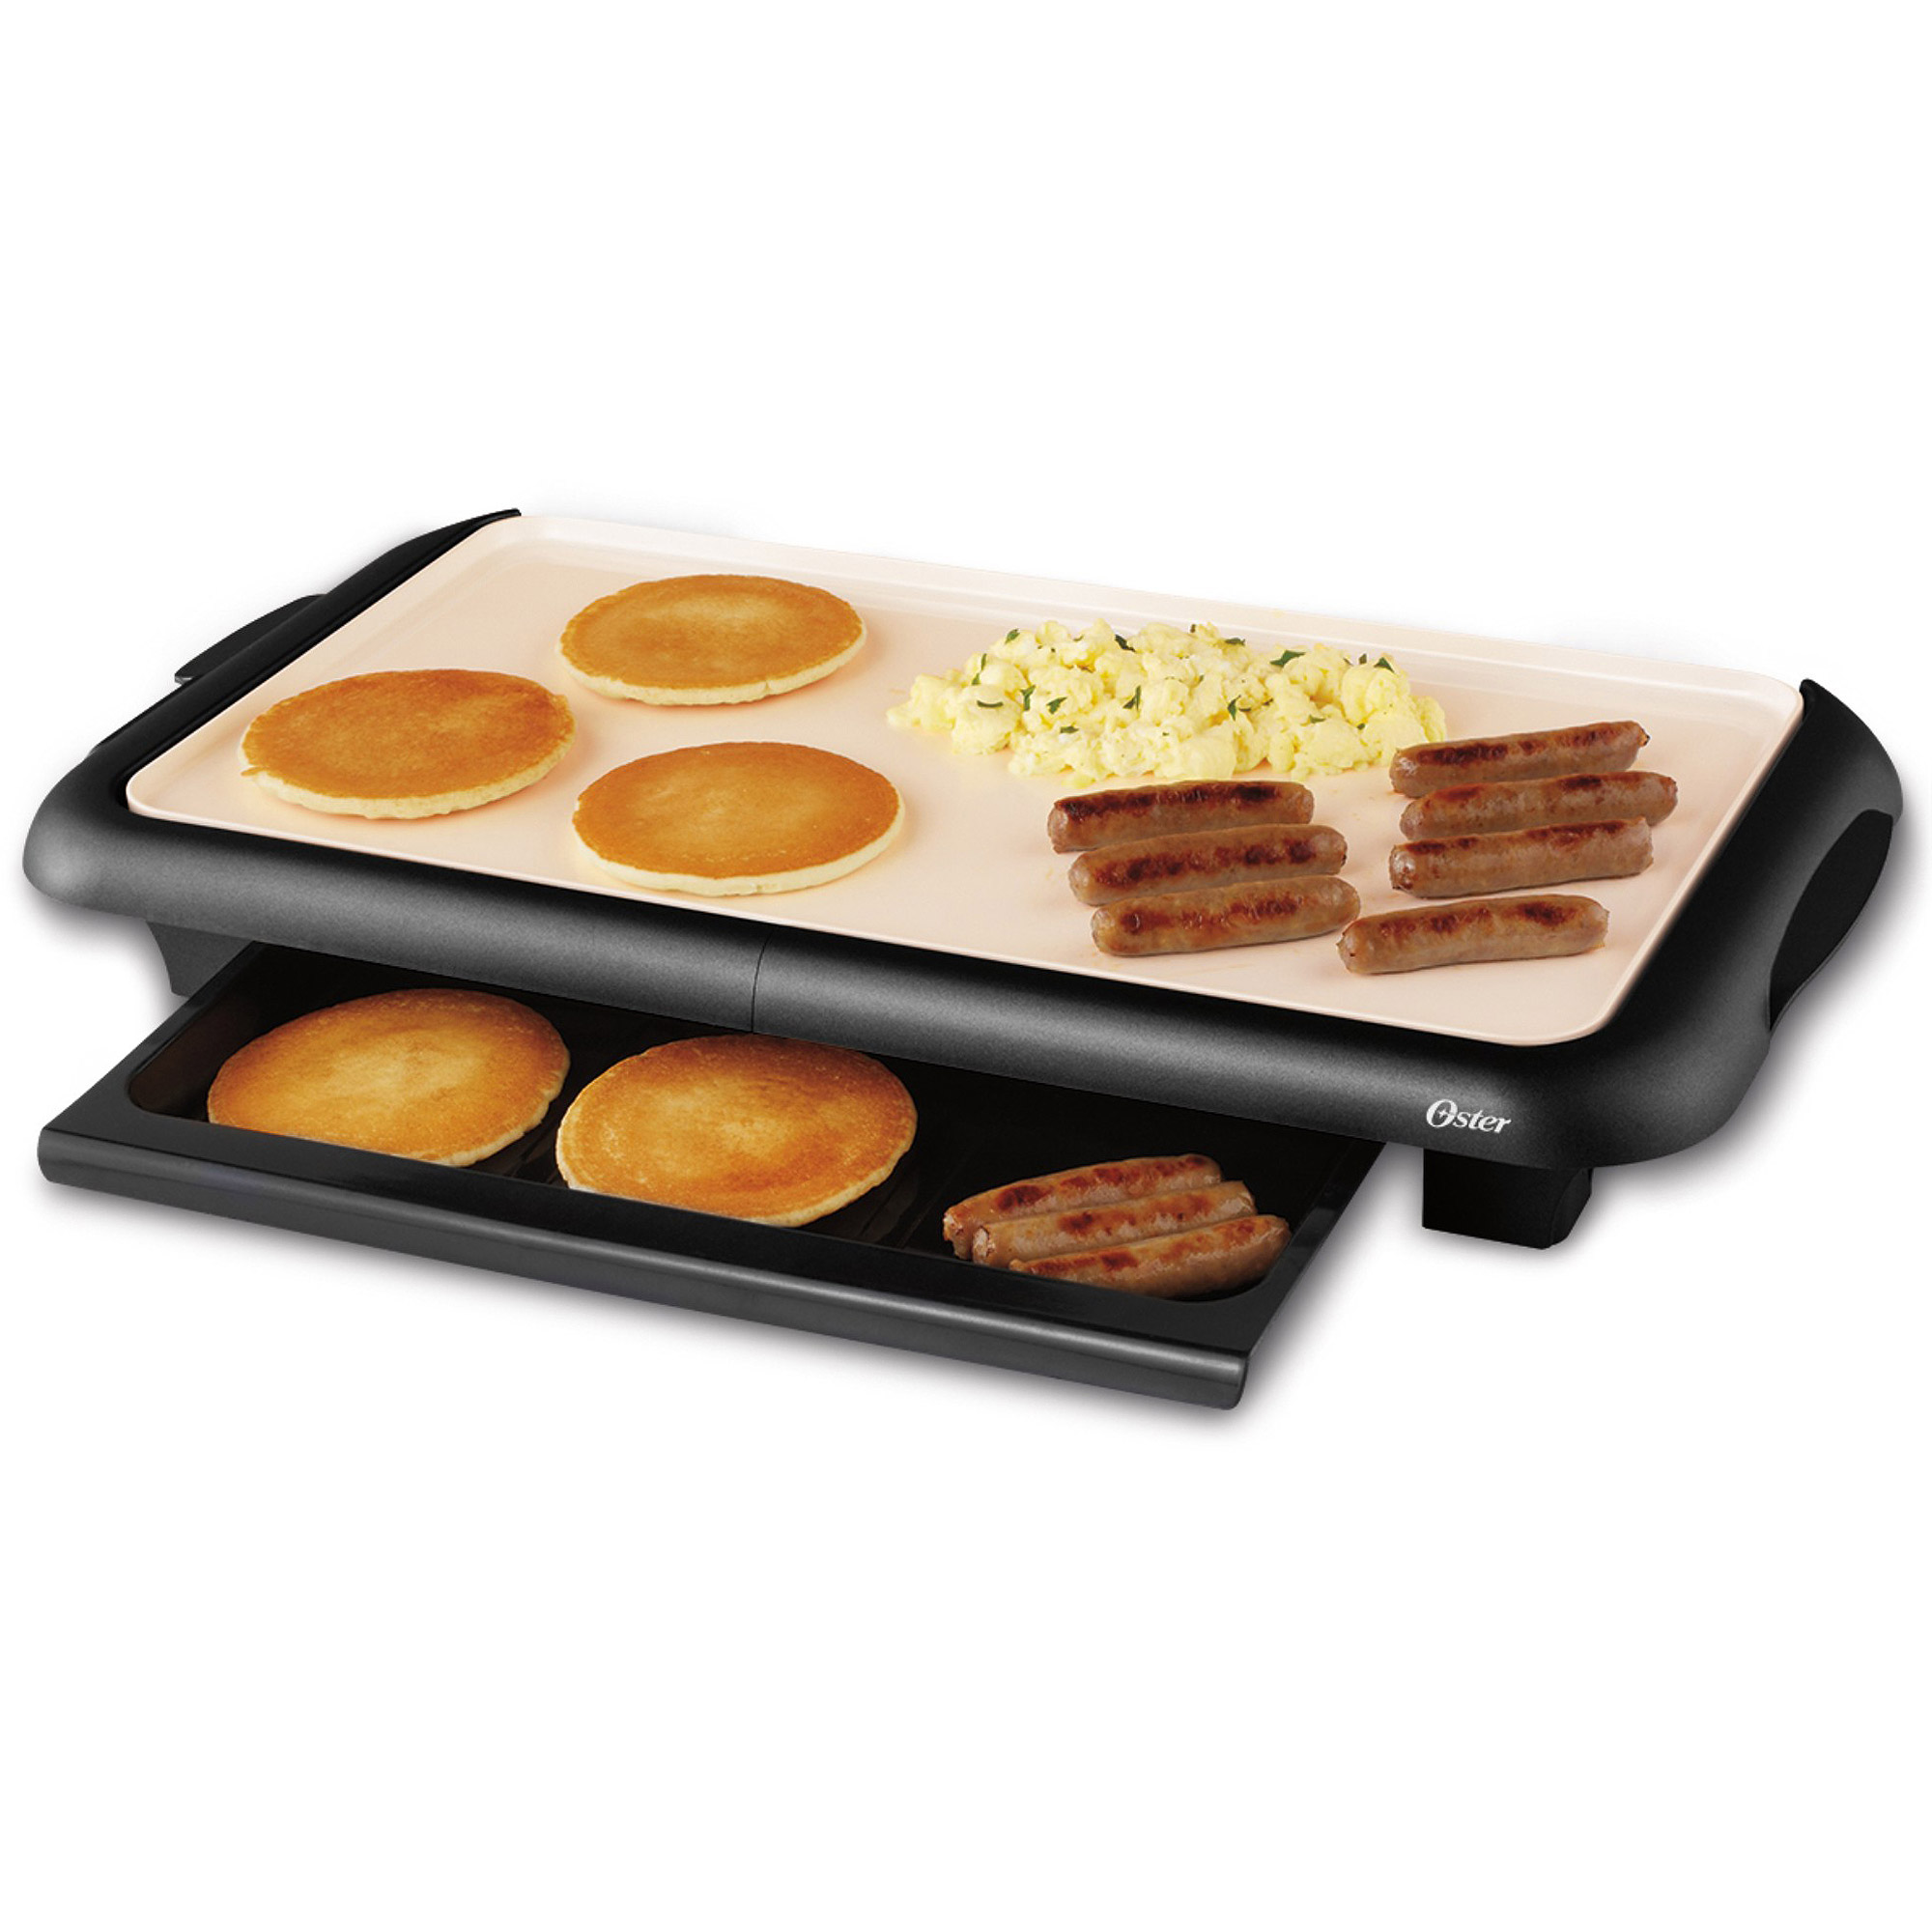 Oster DuraCeramic Griddle